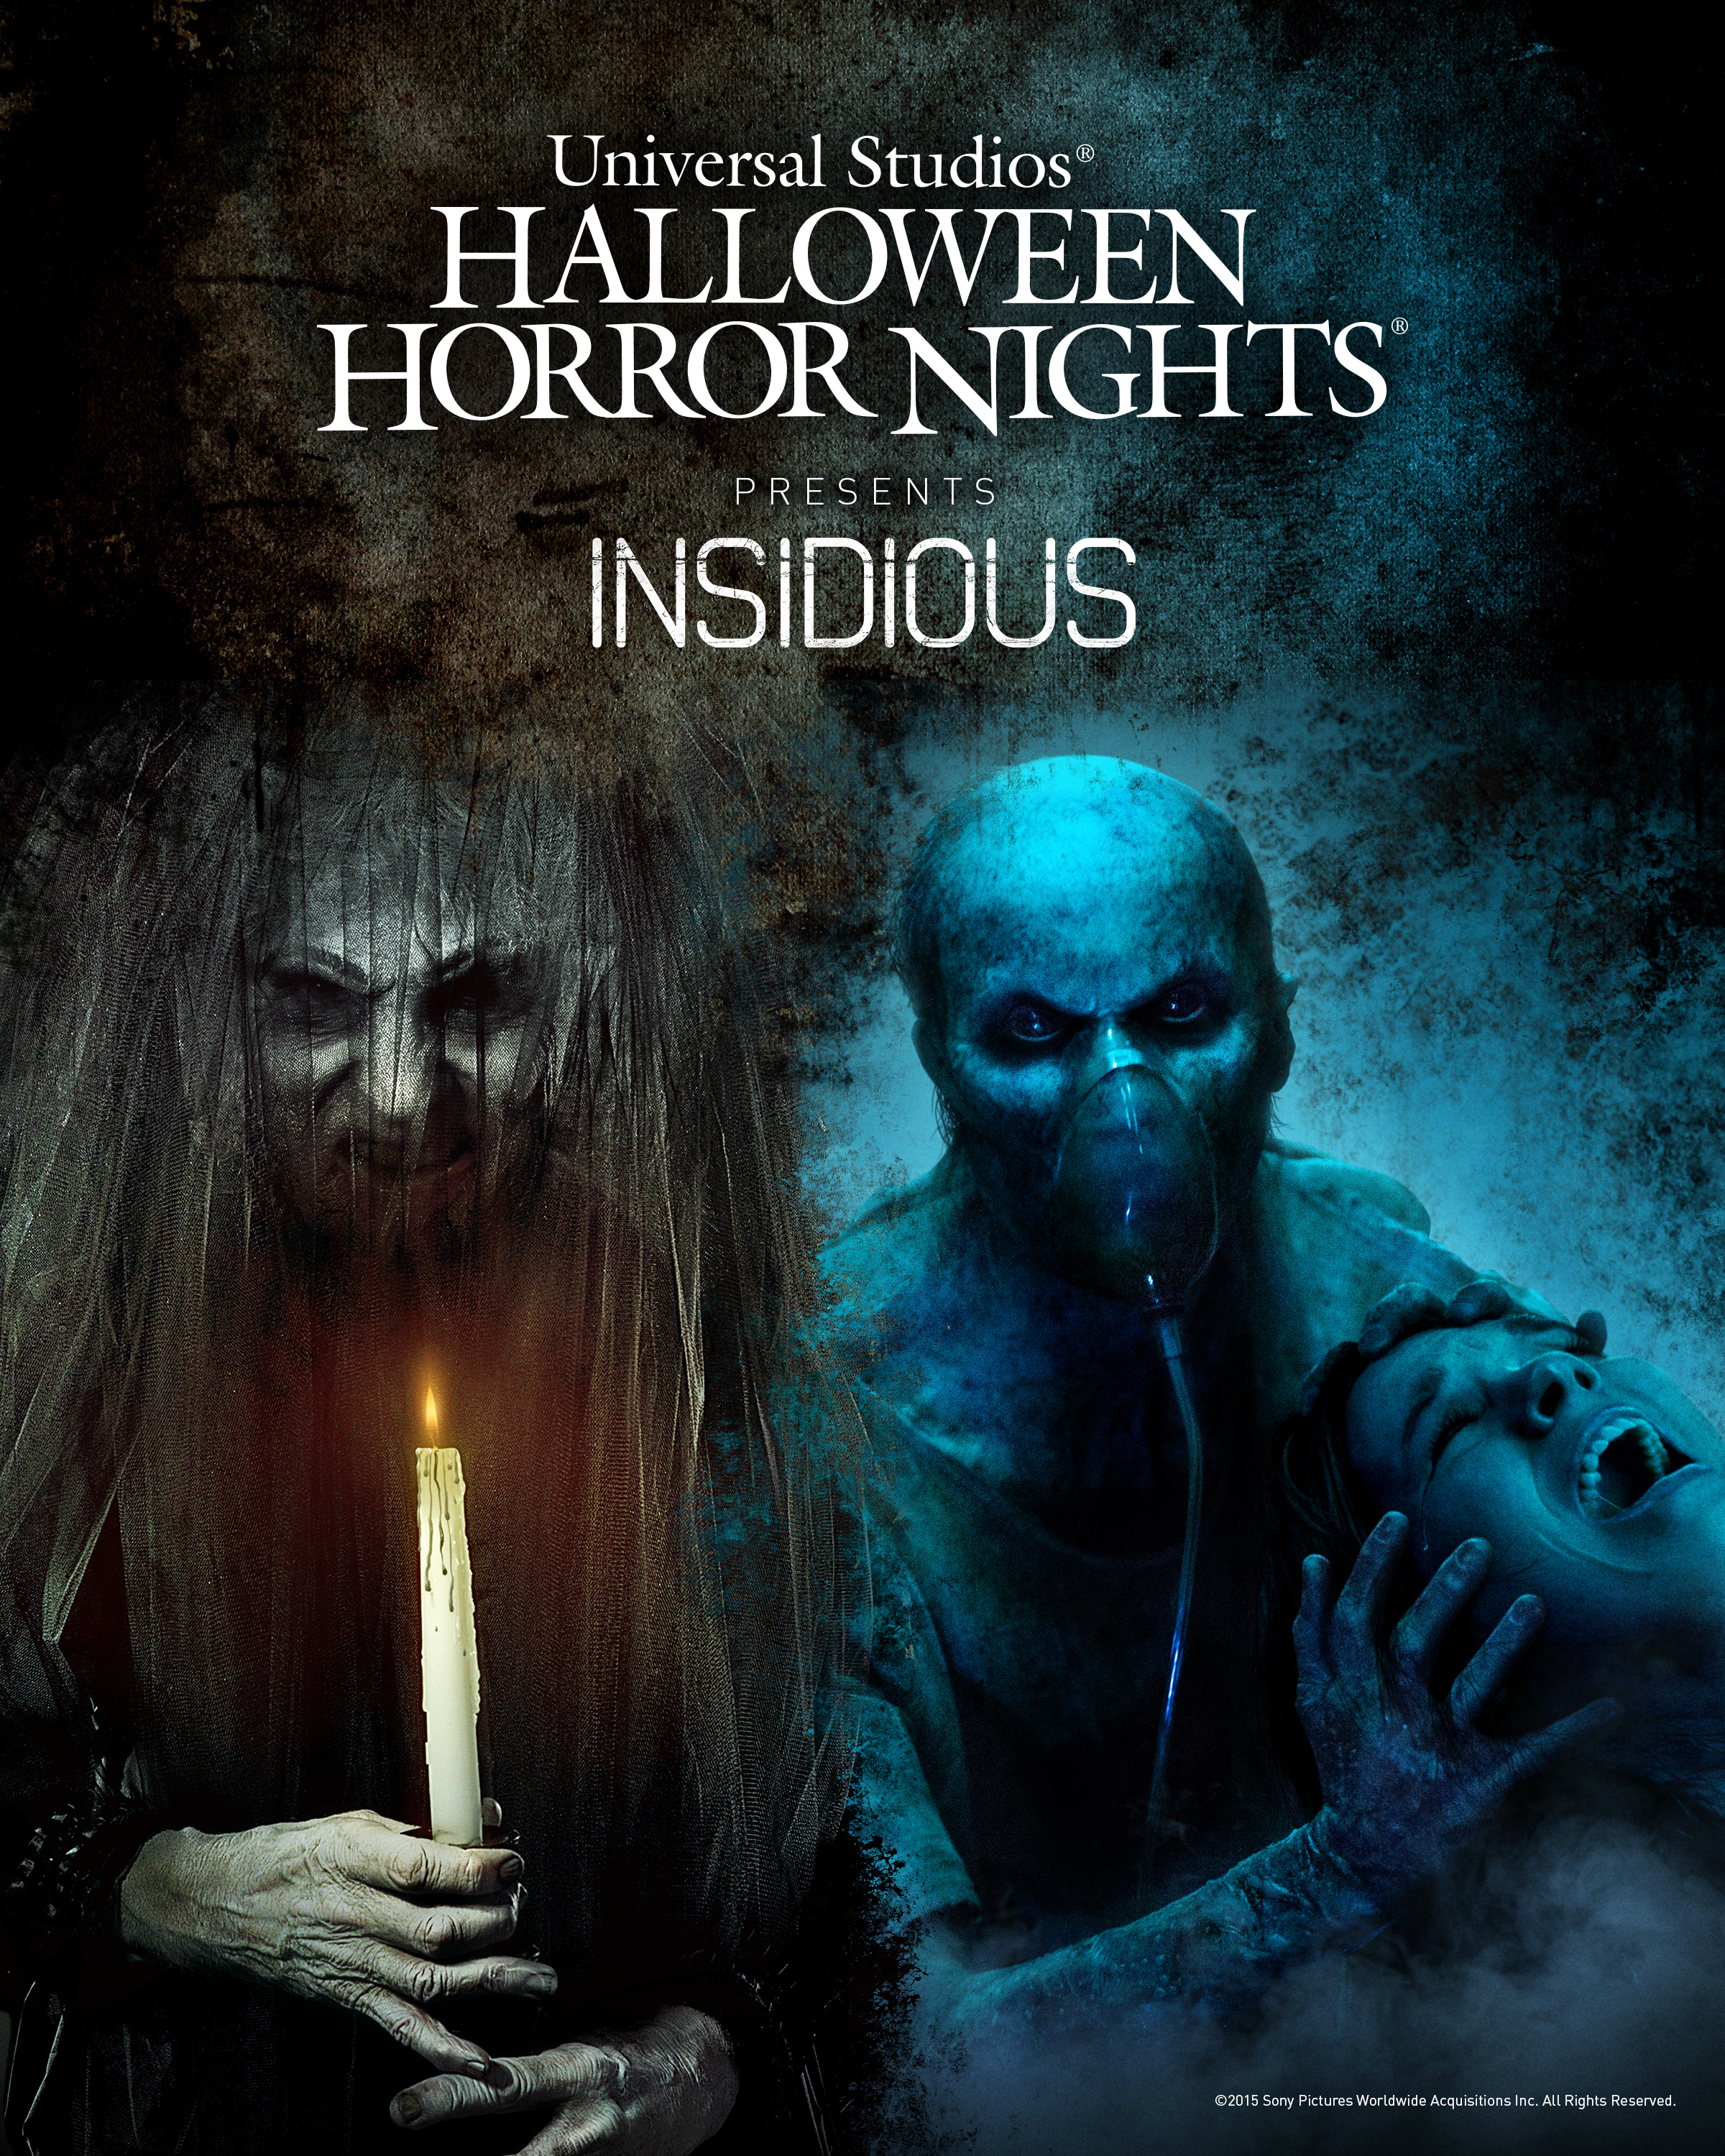 Halloween Horror Nights News: New Franchise Joins Line-Up ...